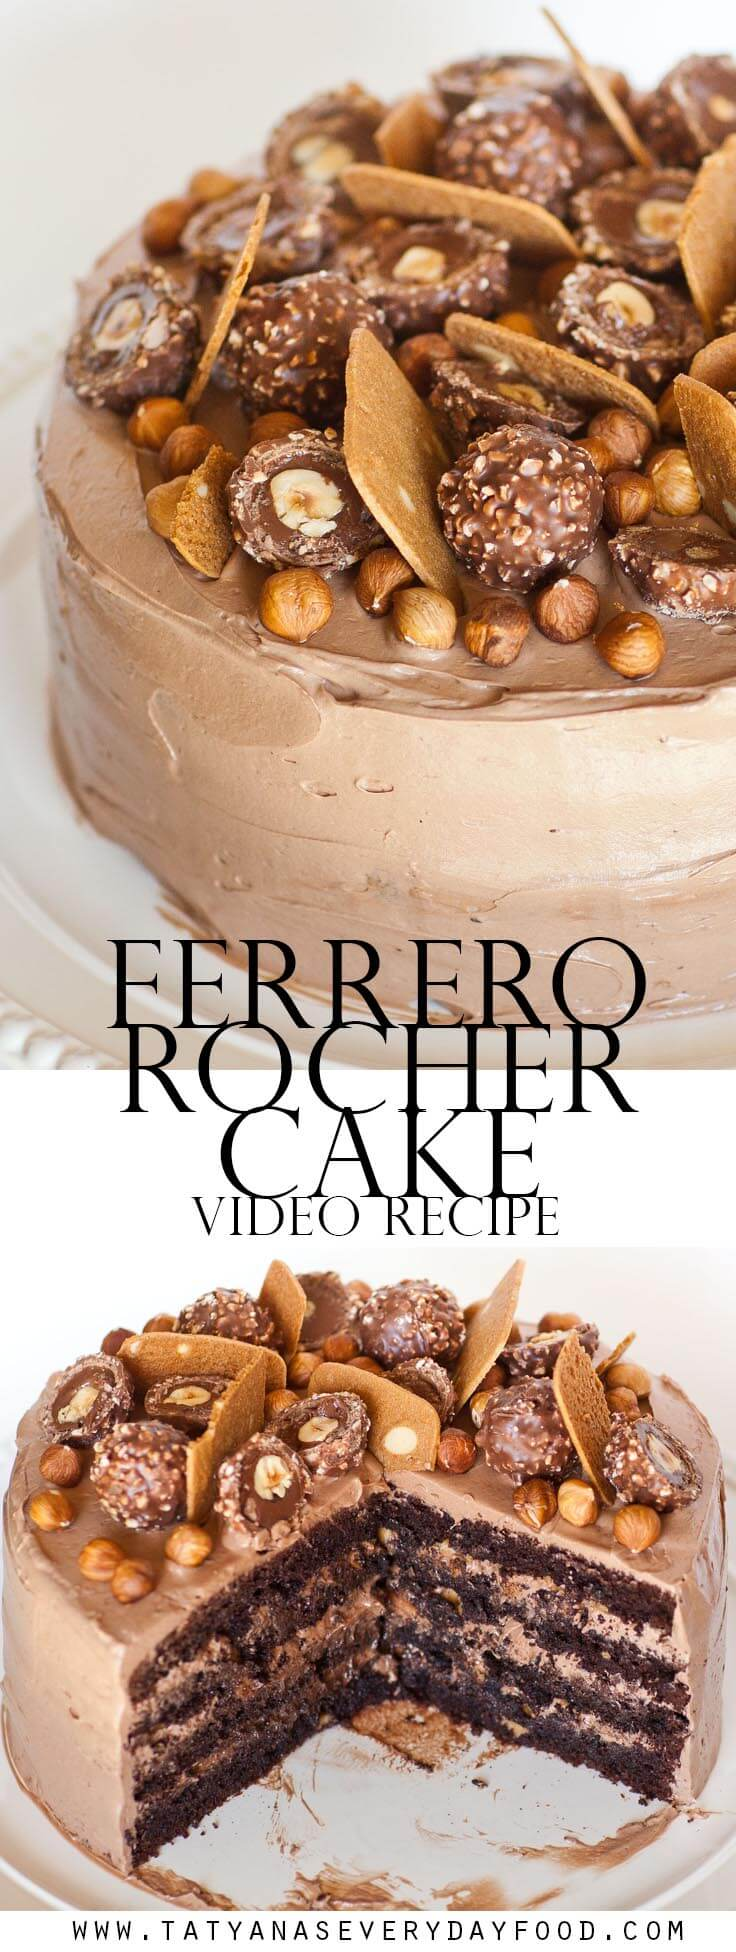 The Best Ferrero Rocher Cake recipe with video